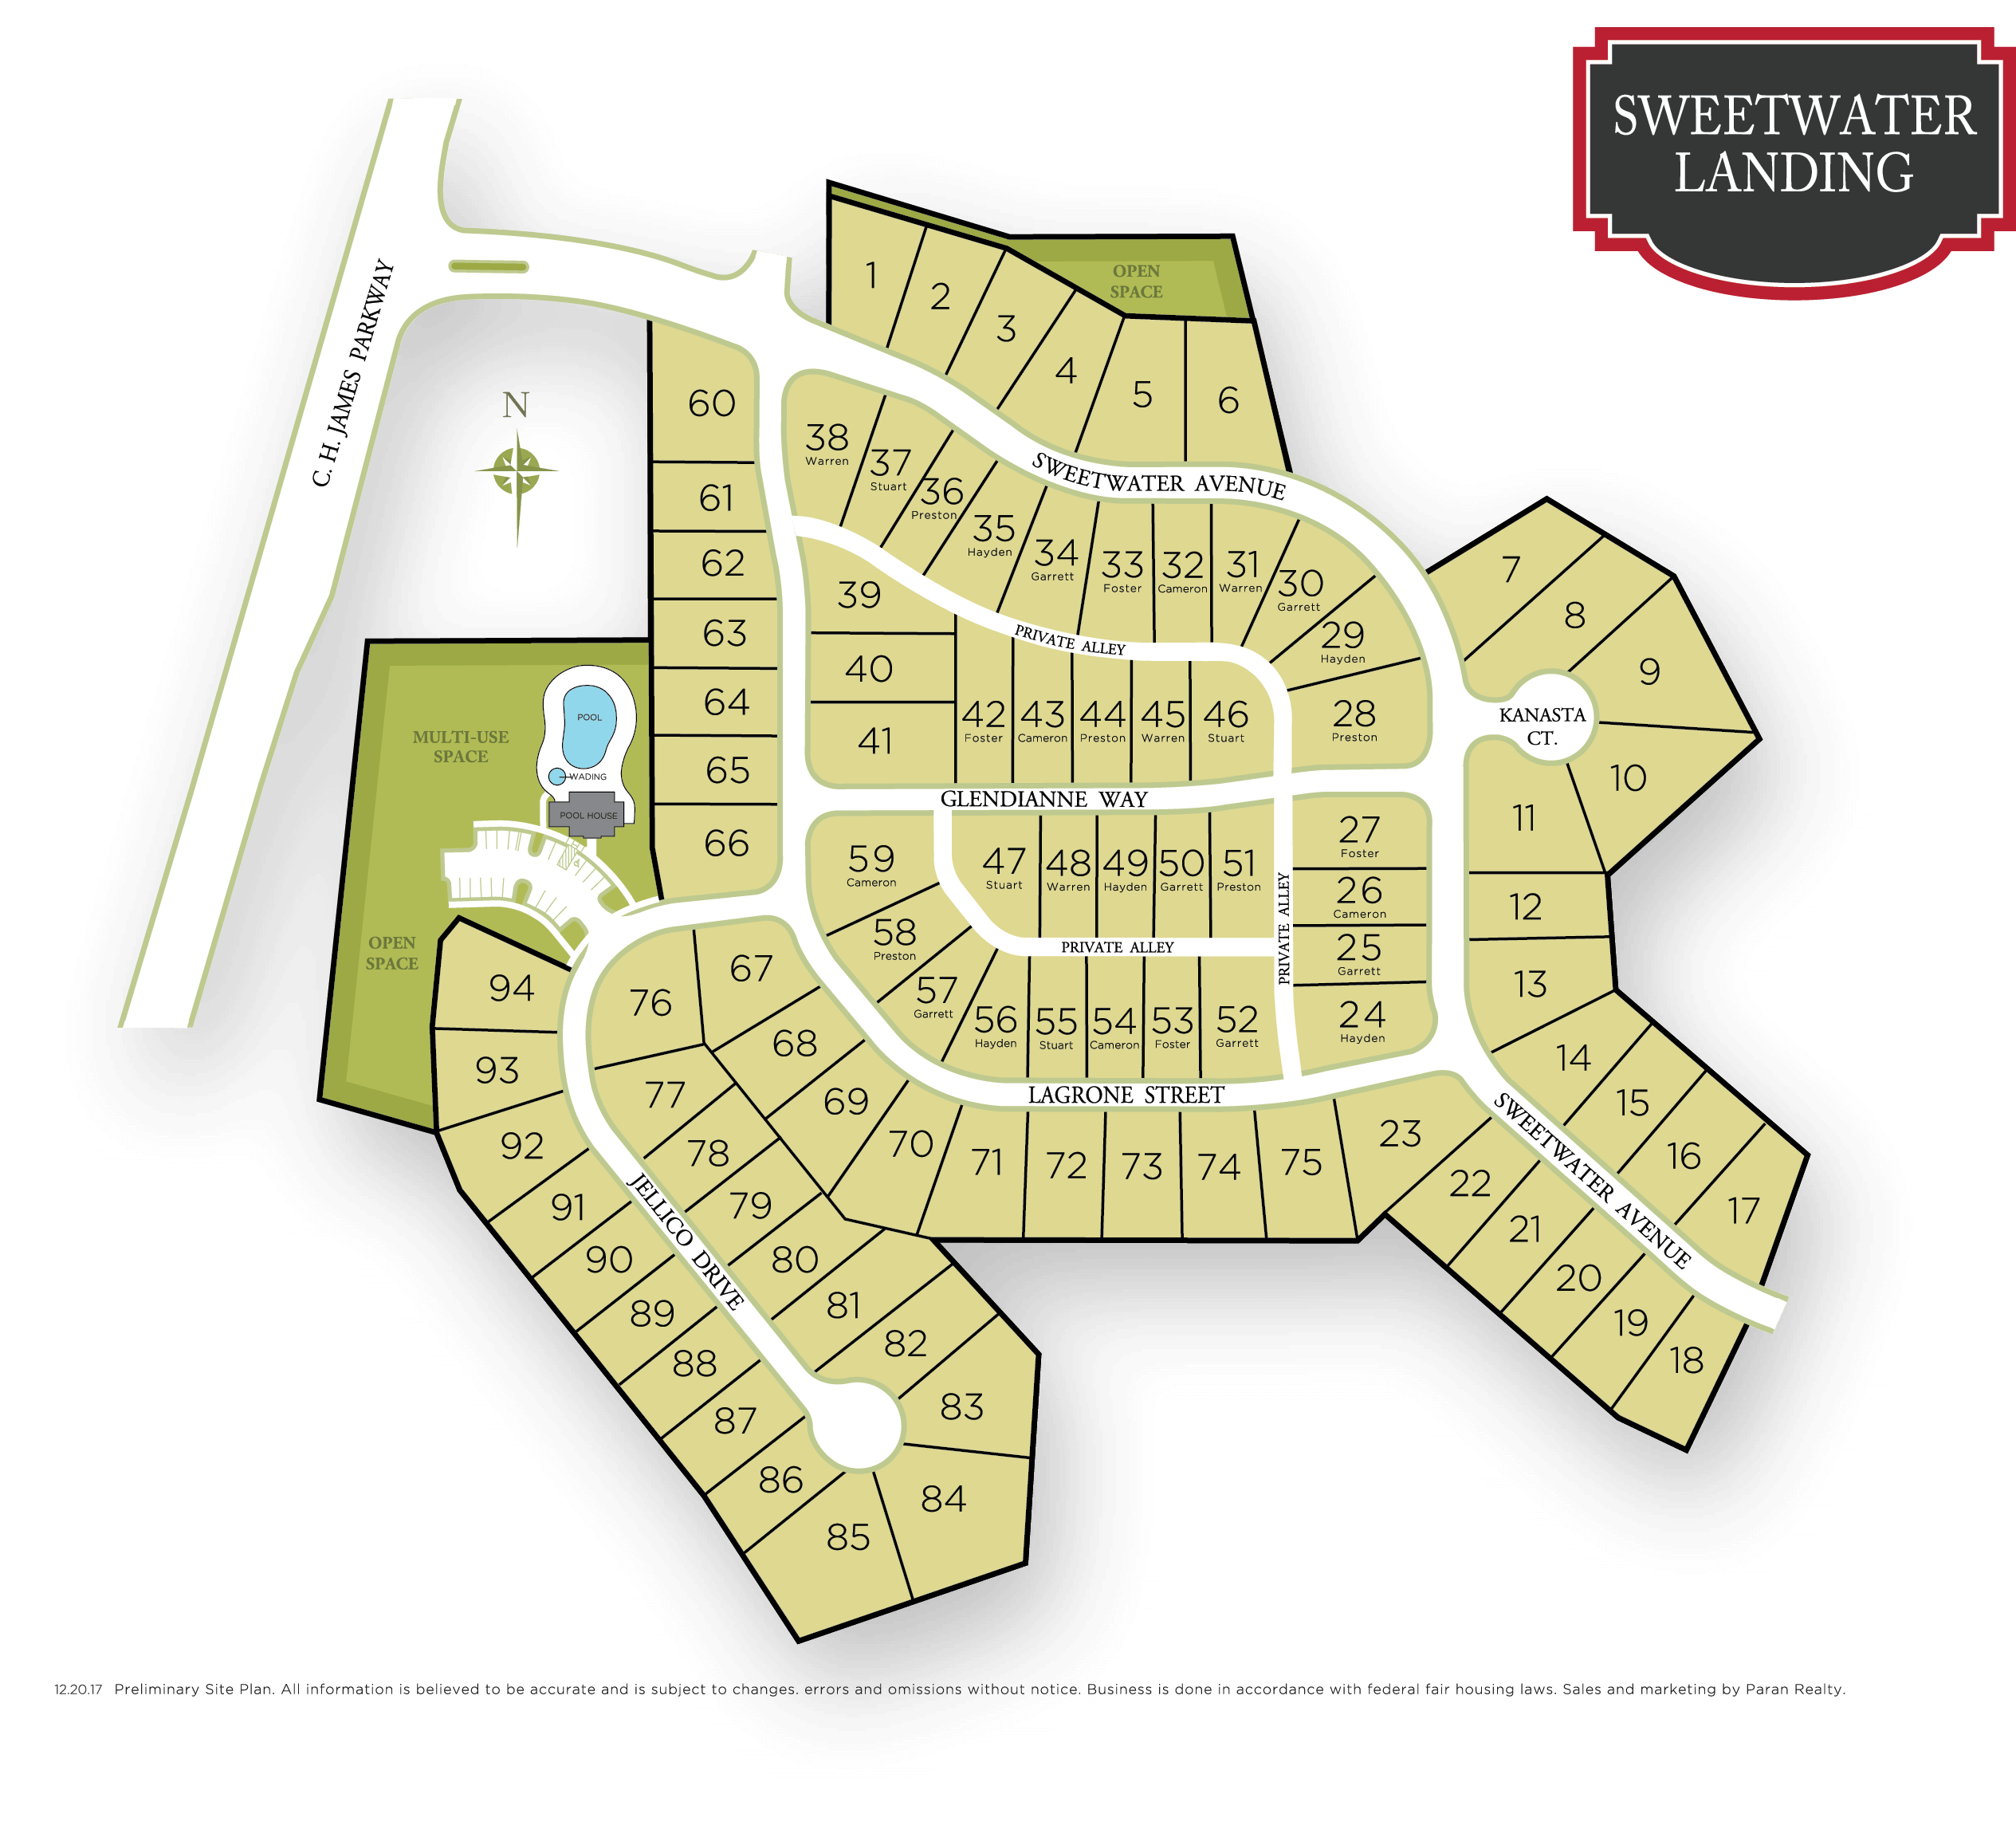 Sweetwater Landing Powder Springs | Site Plan